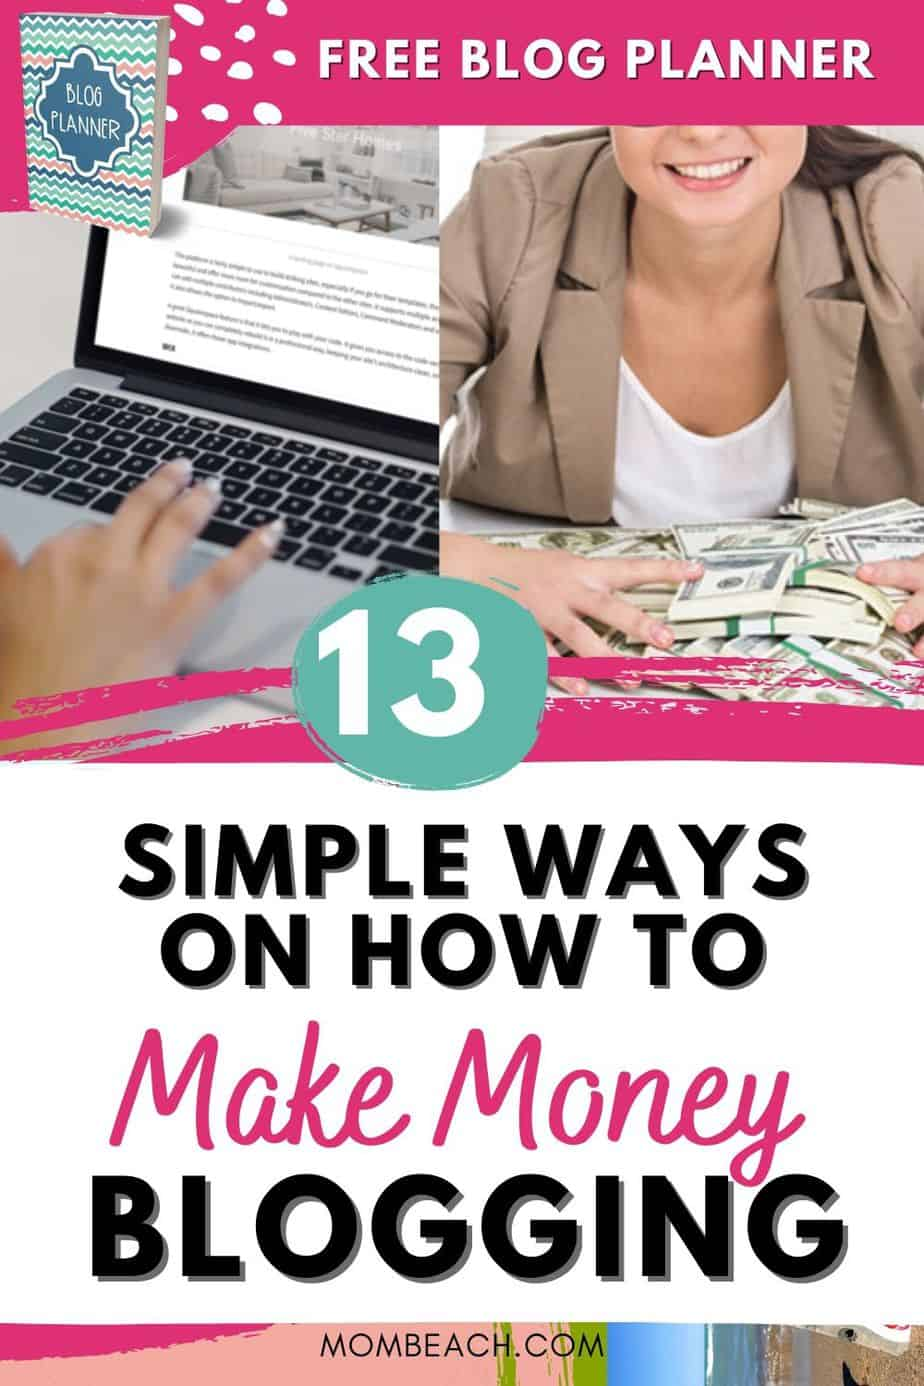 You won't believe how easy it can be to make money blogging! I show you how I make money blogging when my blog is less than 2 years old. It is simple to learn how to make money blogging for beginners in their first month fast. Stay at home and make money blogging now. You can get started with affiliate marketing. It is great to make money blogging for passive income! #howtomakemoneyblogging #howtomakemoneybloggingforbeginners #howtomakemoneybloggingfirstmonth